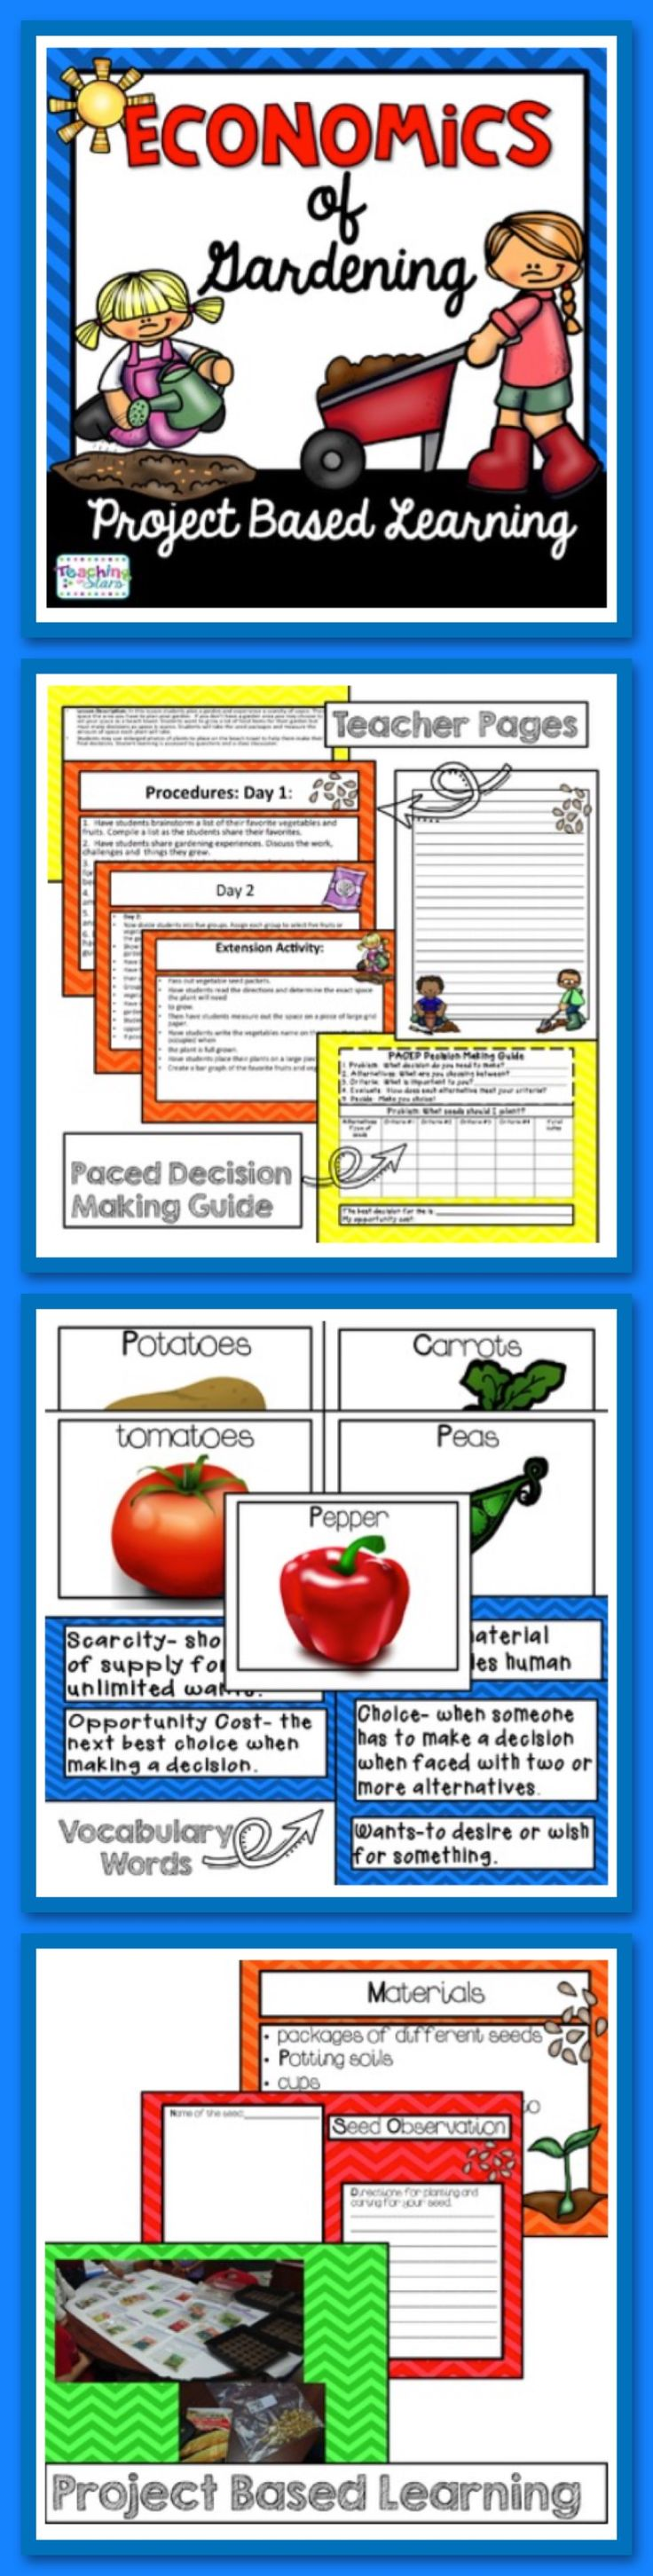 In this lesson students plan a garden and experience a scarcity of space. If you don't have a garden area you may choose to set your space as a beach towel. Students want to grow a lot of food items for their garden but must make decisions as space is scarce. Students will take the seed packages and measure the amount of space each plant will take.  Students may use enlarged photos of plants to place on the beach towel to help them make their final decisions.